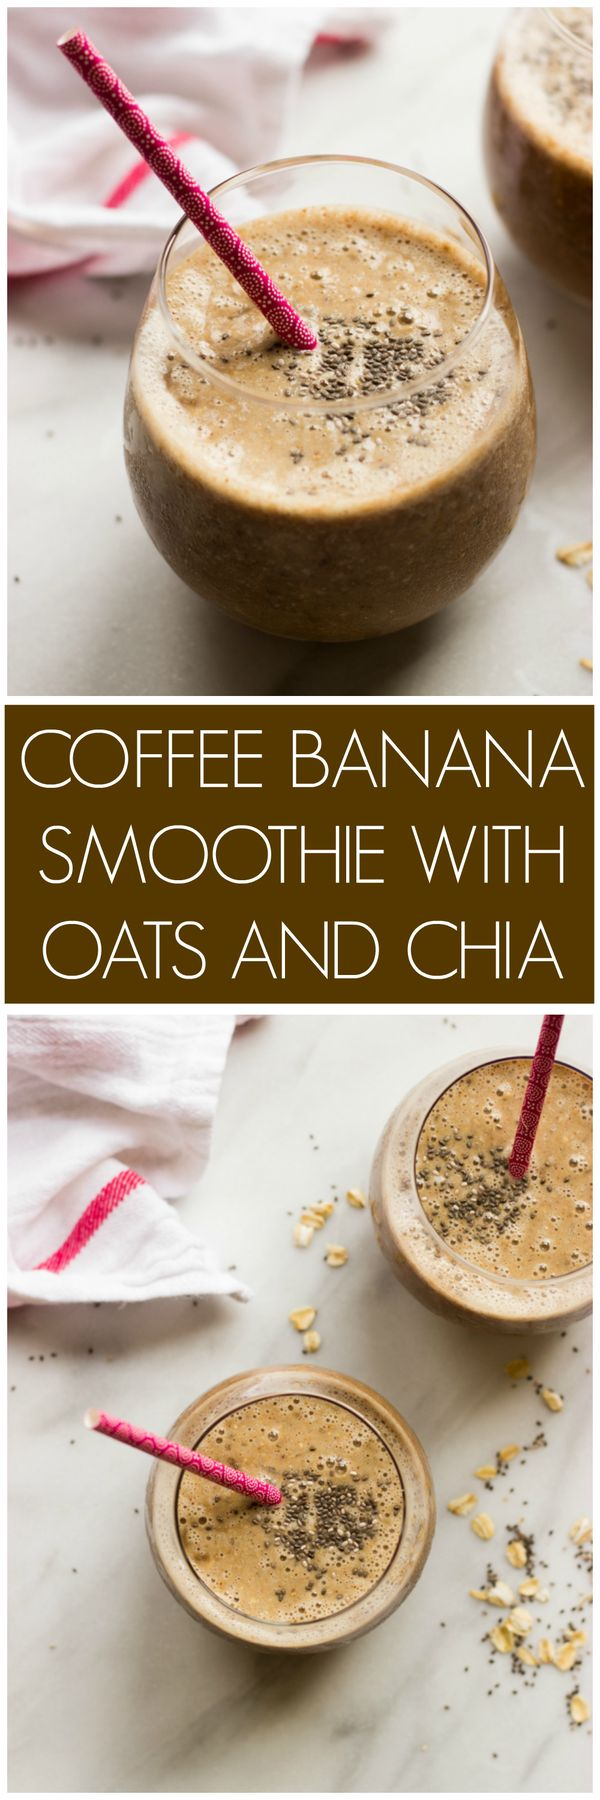 Coffee Banana Smoothie with Oats and Chia